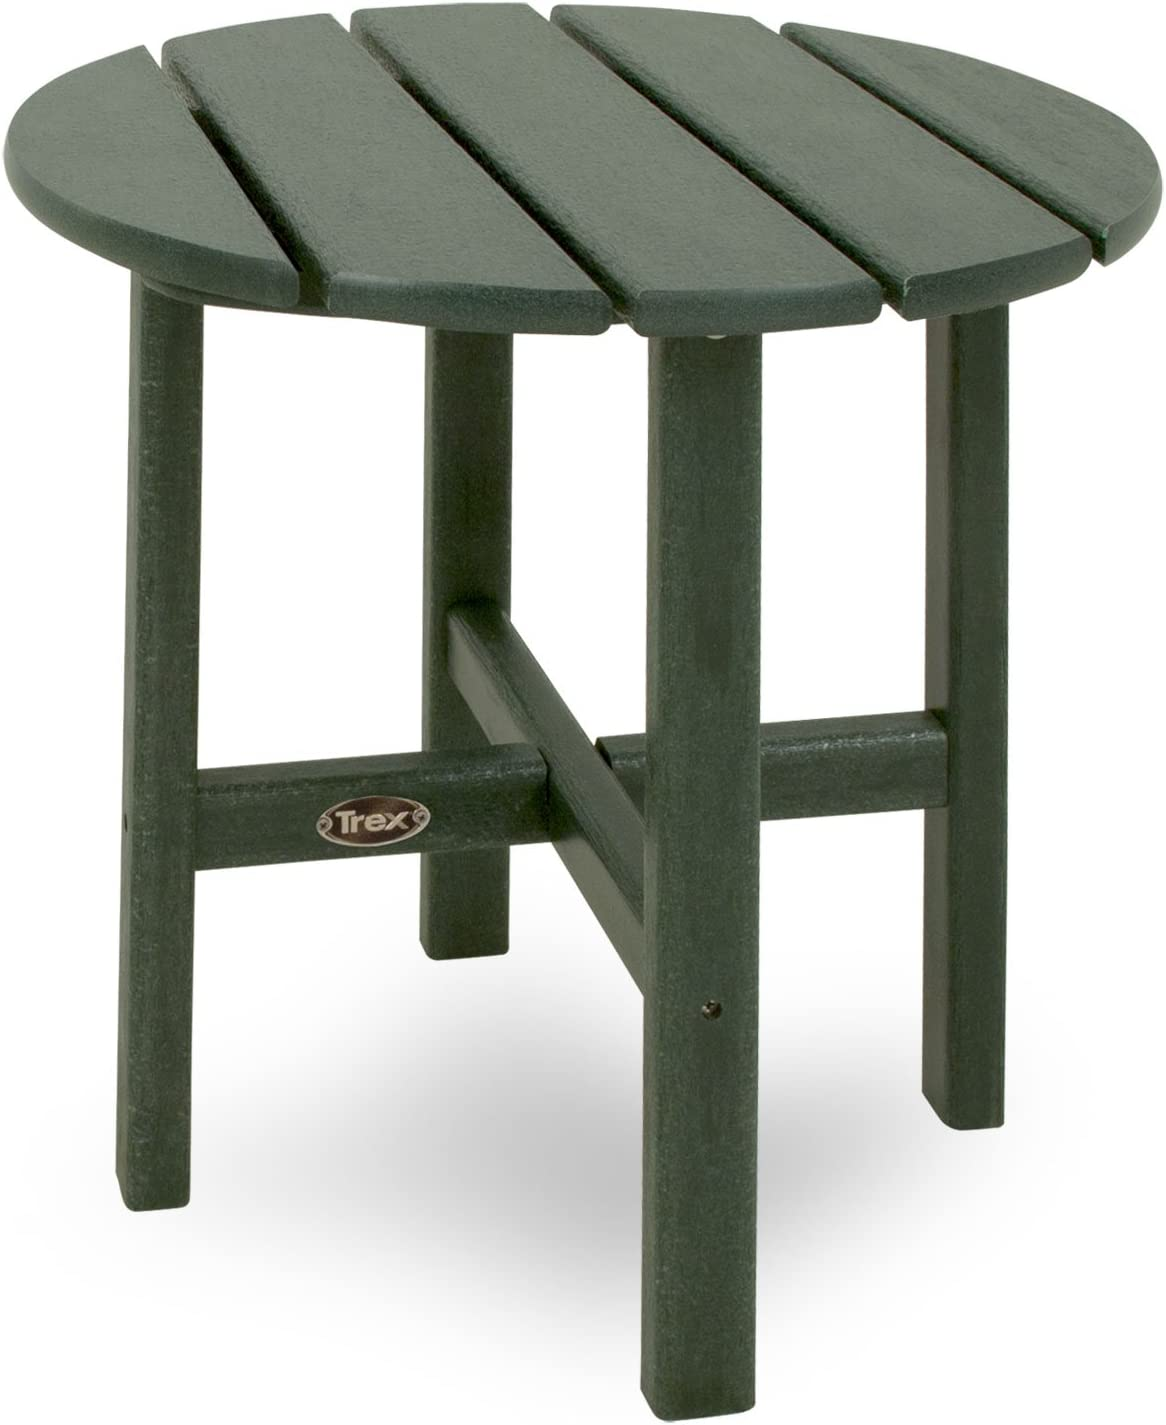 Trex Outdoor Furniture Cape Cod Round 18-Inch Side Table, Rainforest Canopy